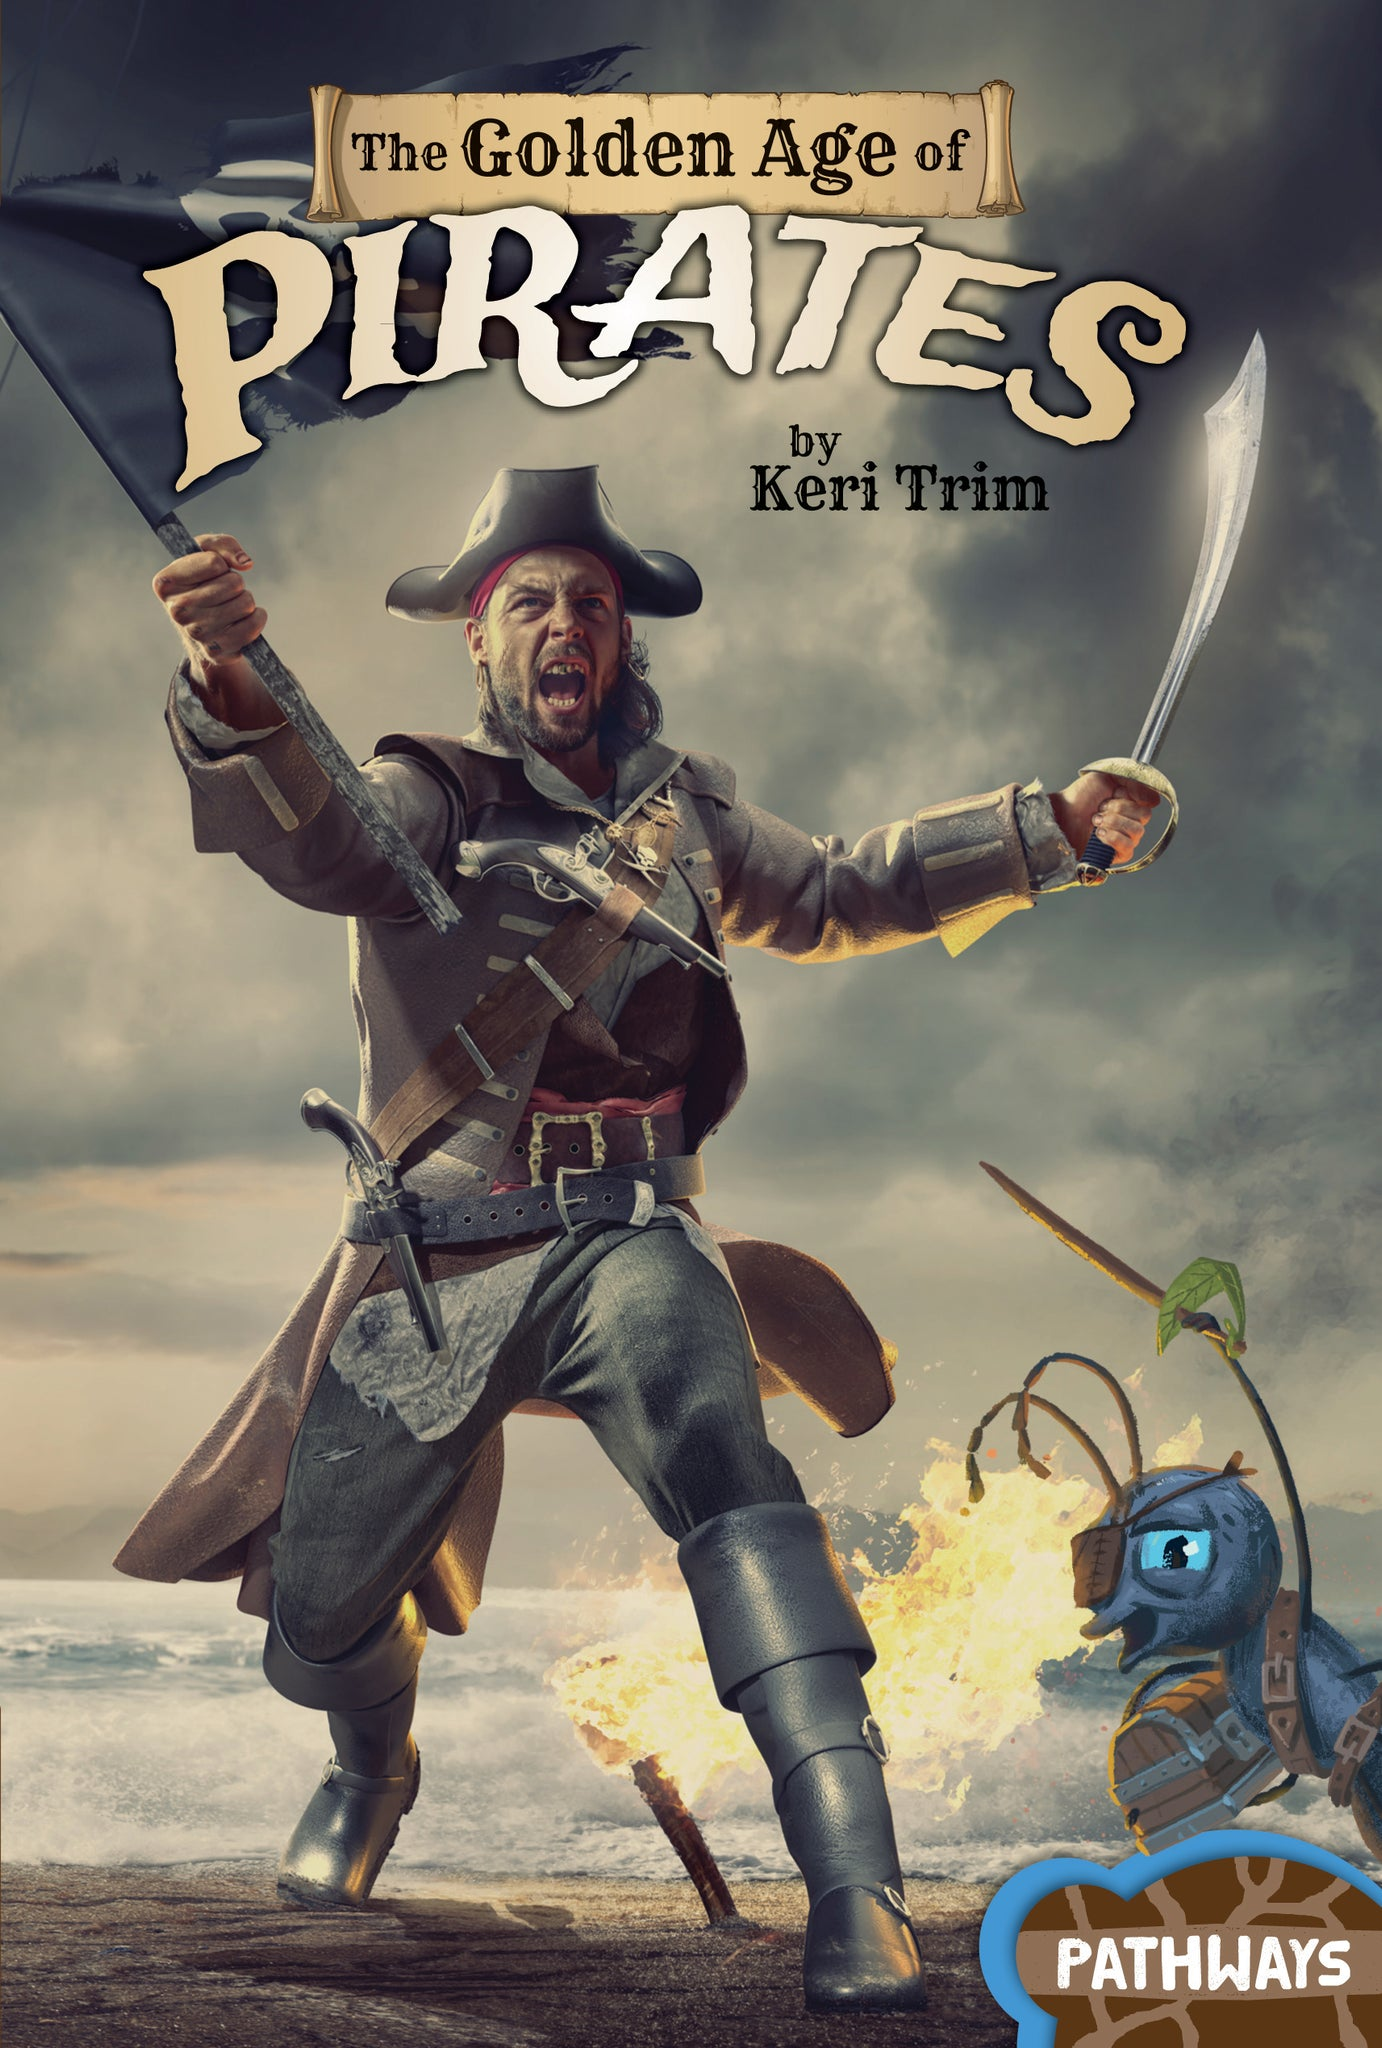 Pathways: The Golden Age of Pirates